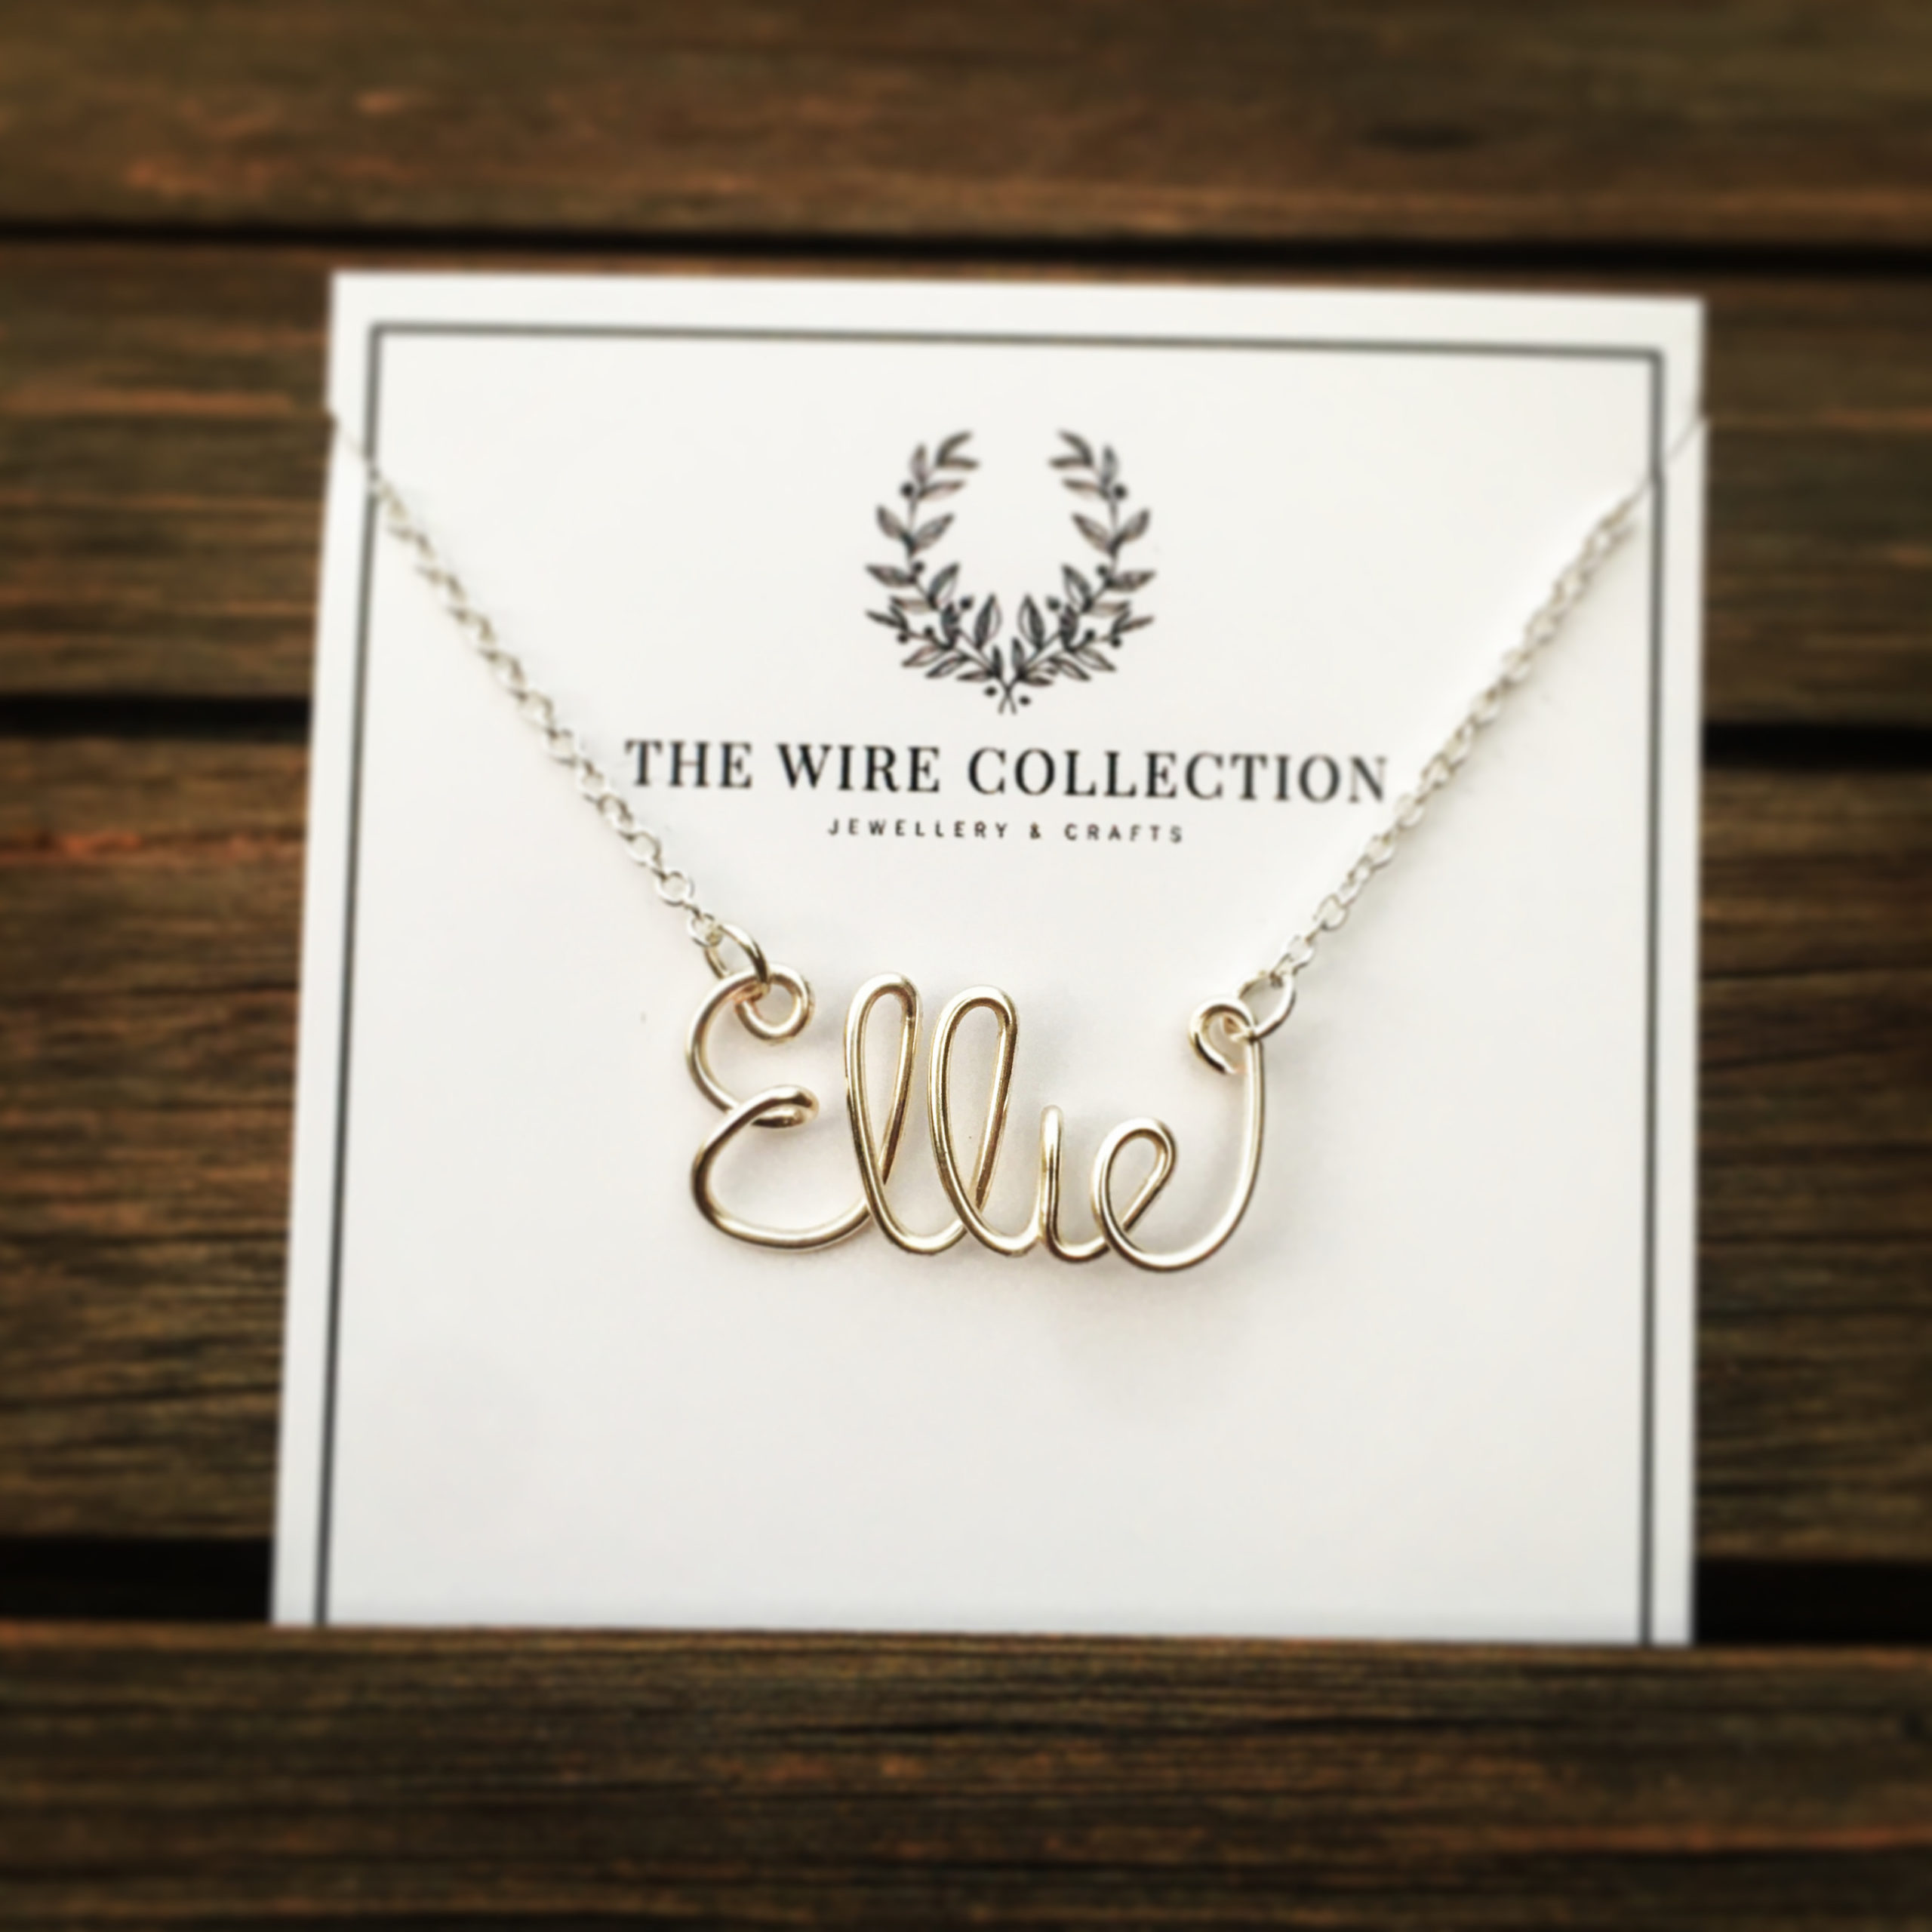 Personalized Name Necklace via @chooicenz